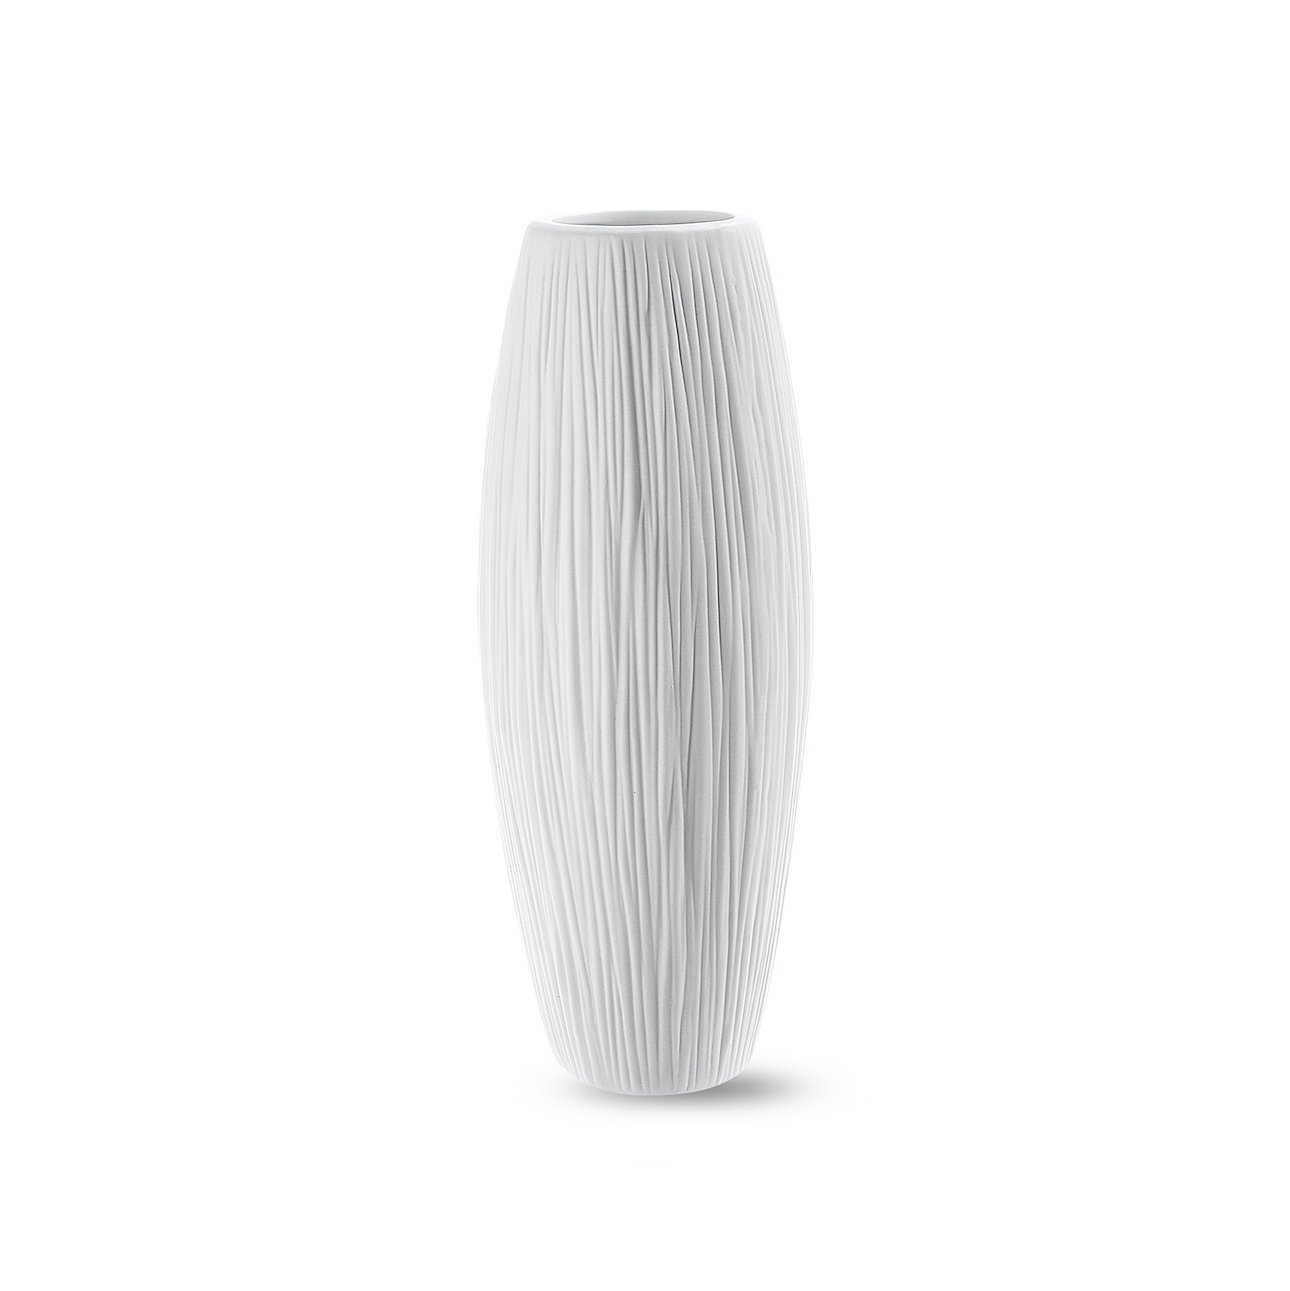 8'' Small Oval Pure White Ceramic Flower Vase - Waterfall Textured Elegant Design - Ideal Gifts for Friends and Family